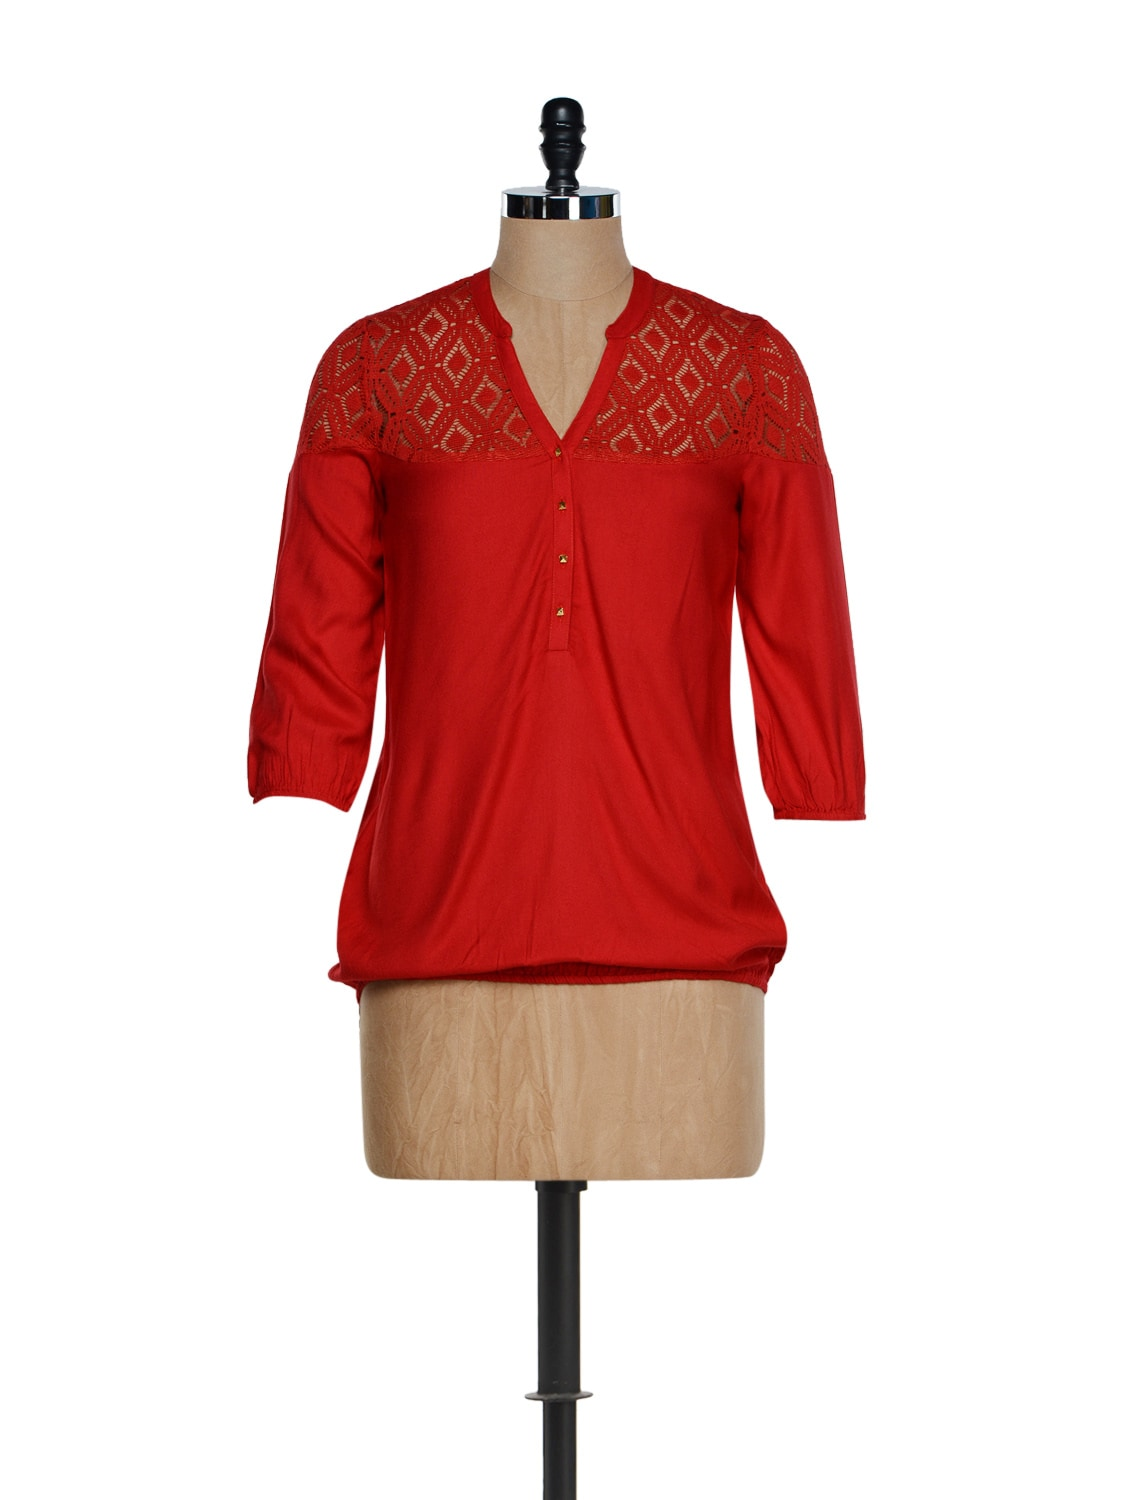 Red Elegant V-neck Top With A Lace Yoke - Femella